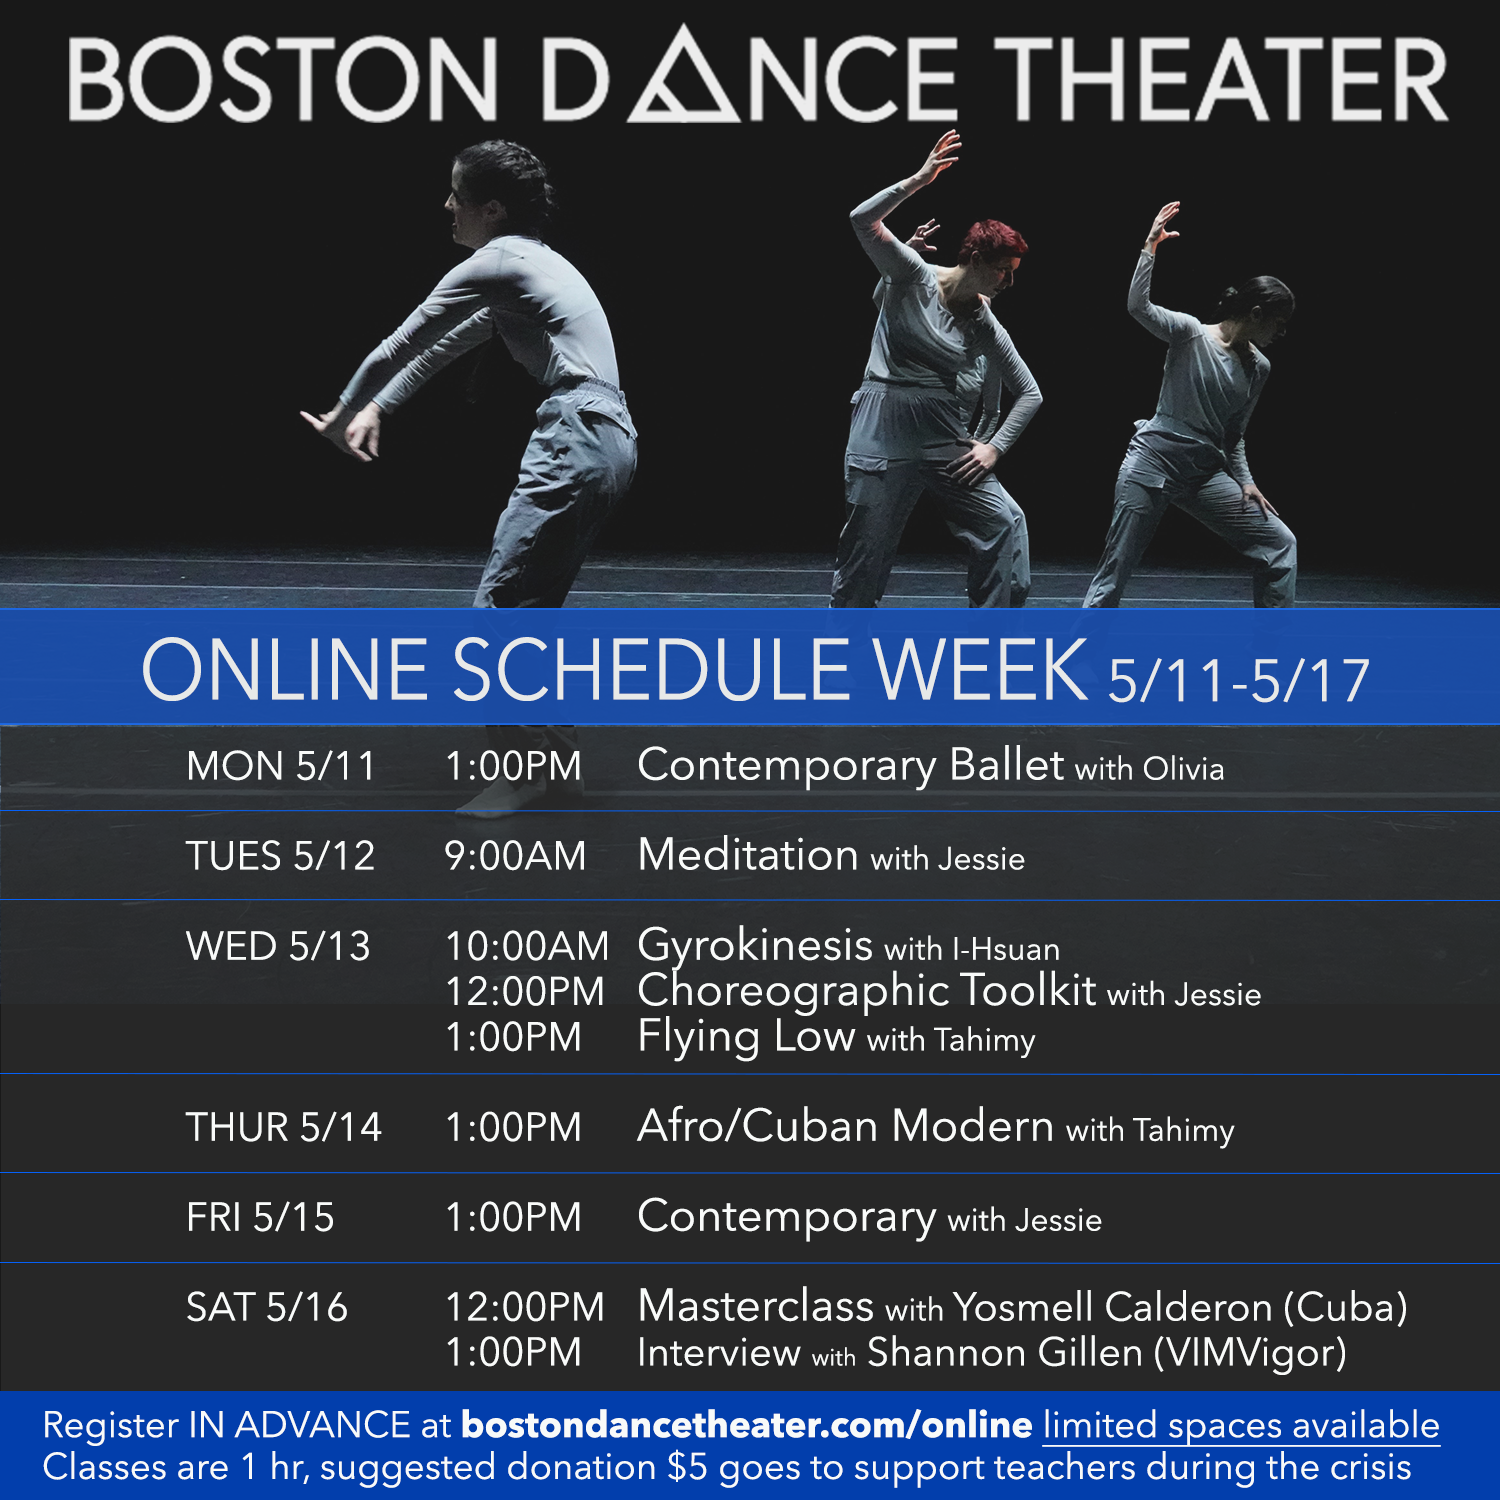 Masterclass: Gyrokinesis with I-Hsuan Chen (Taiwan), hosted by Boston Dance Theater